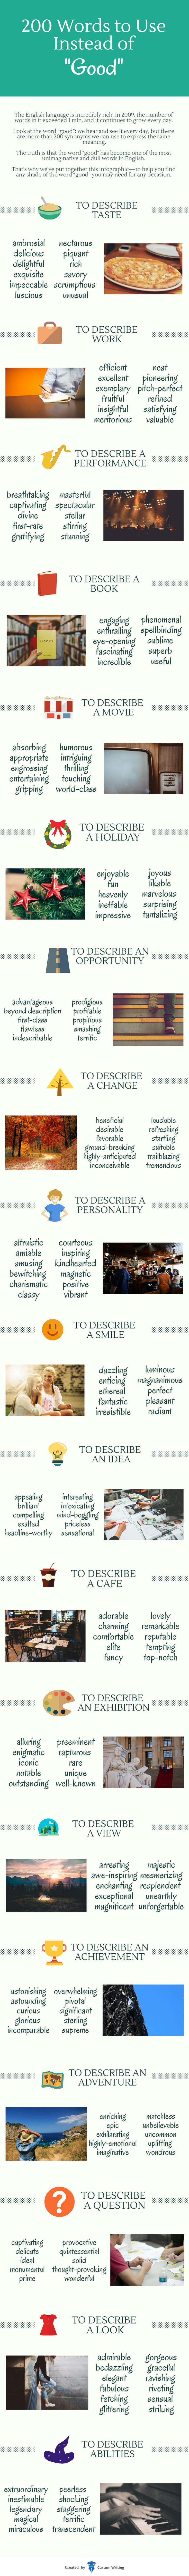 """200 Powerful Words to Use Instead of """"Good"""" [Infographic]"""